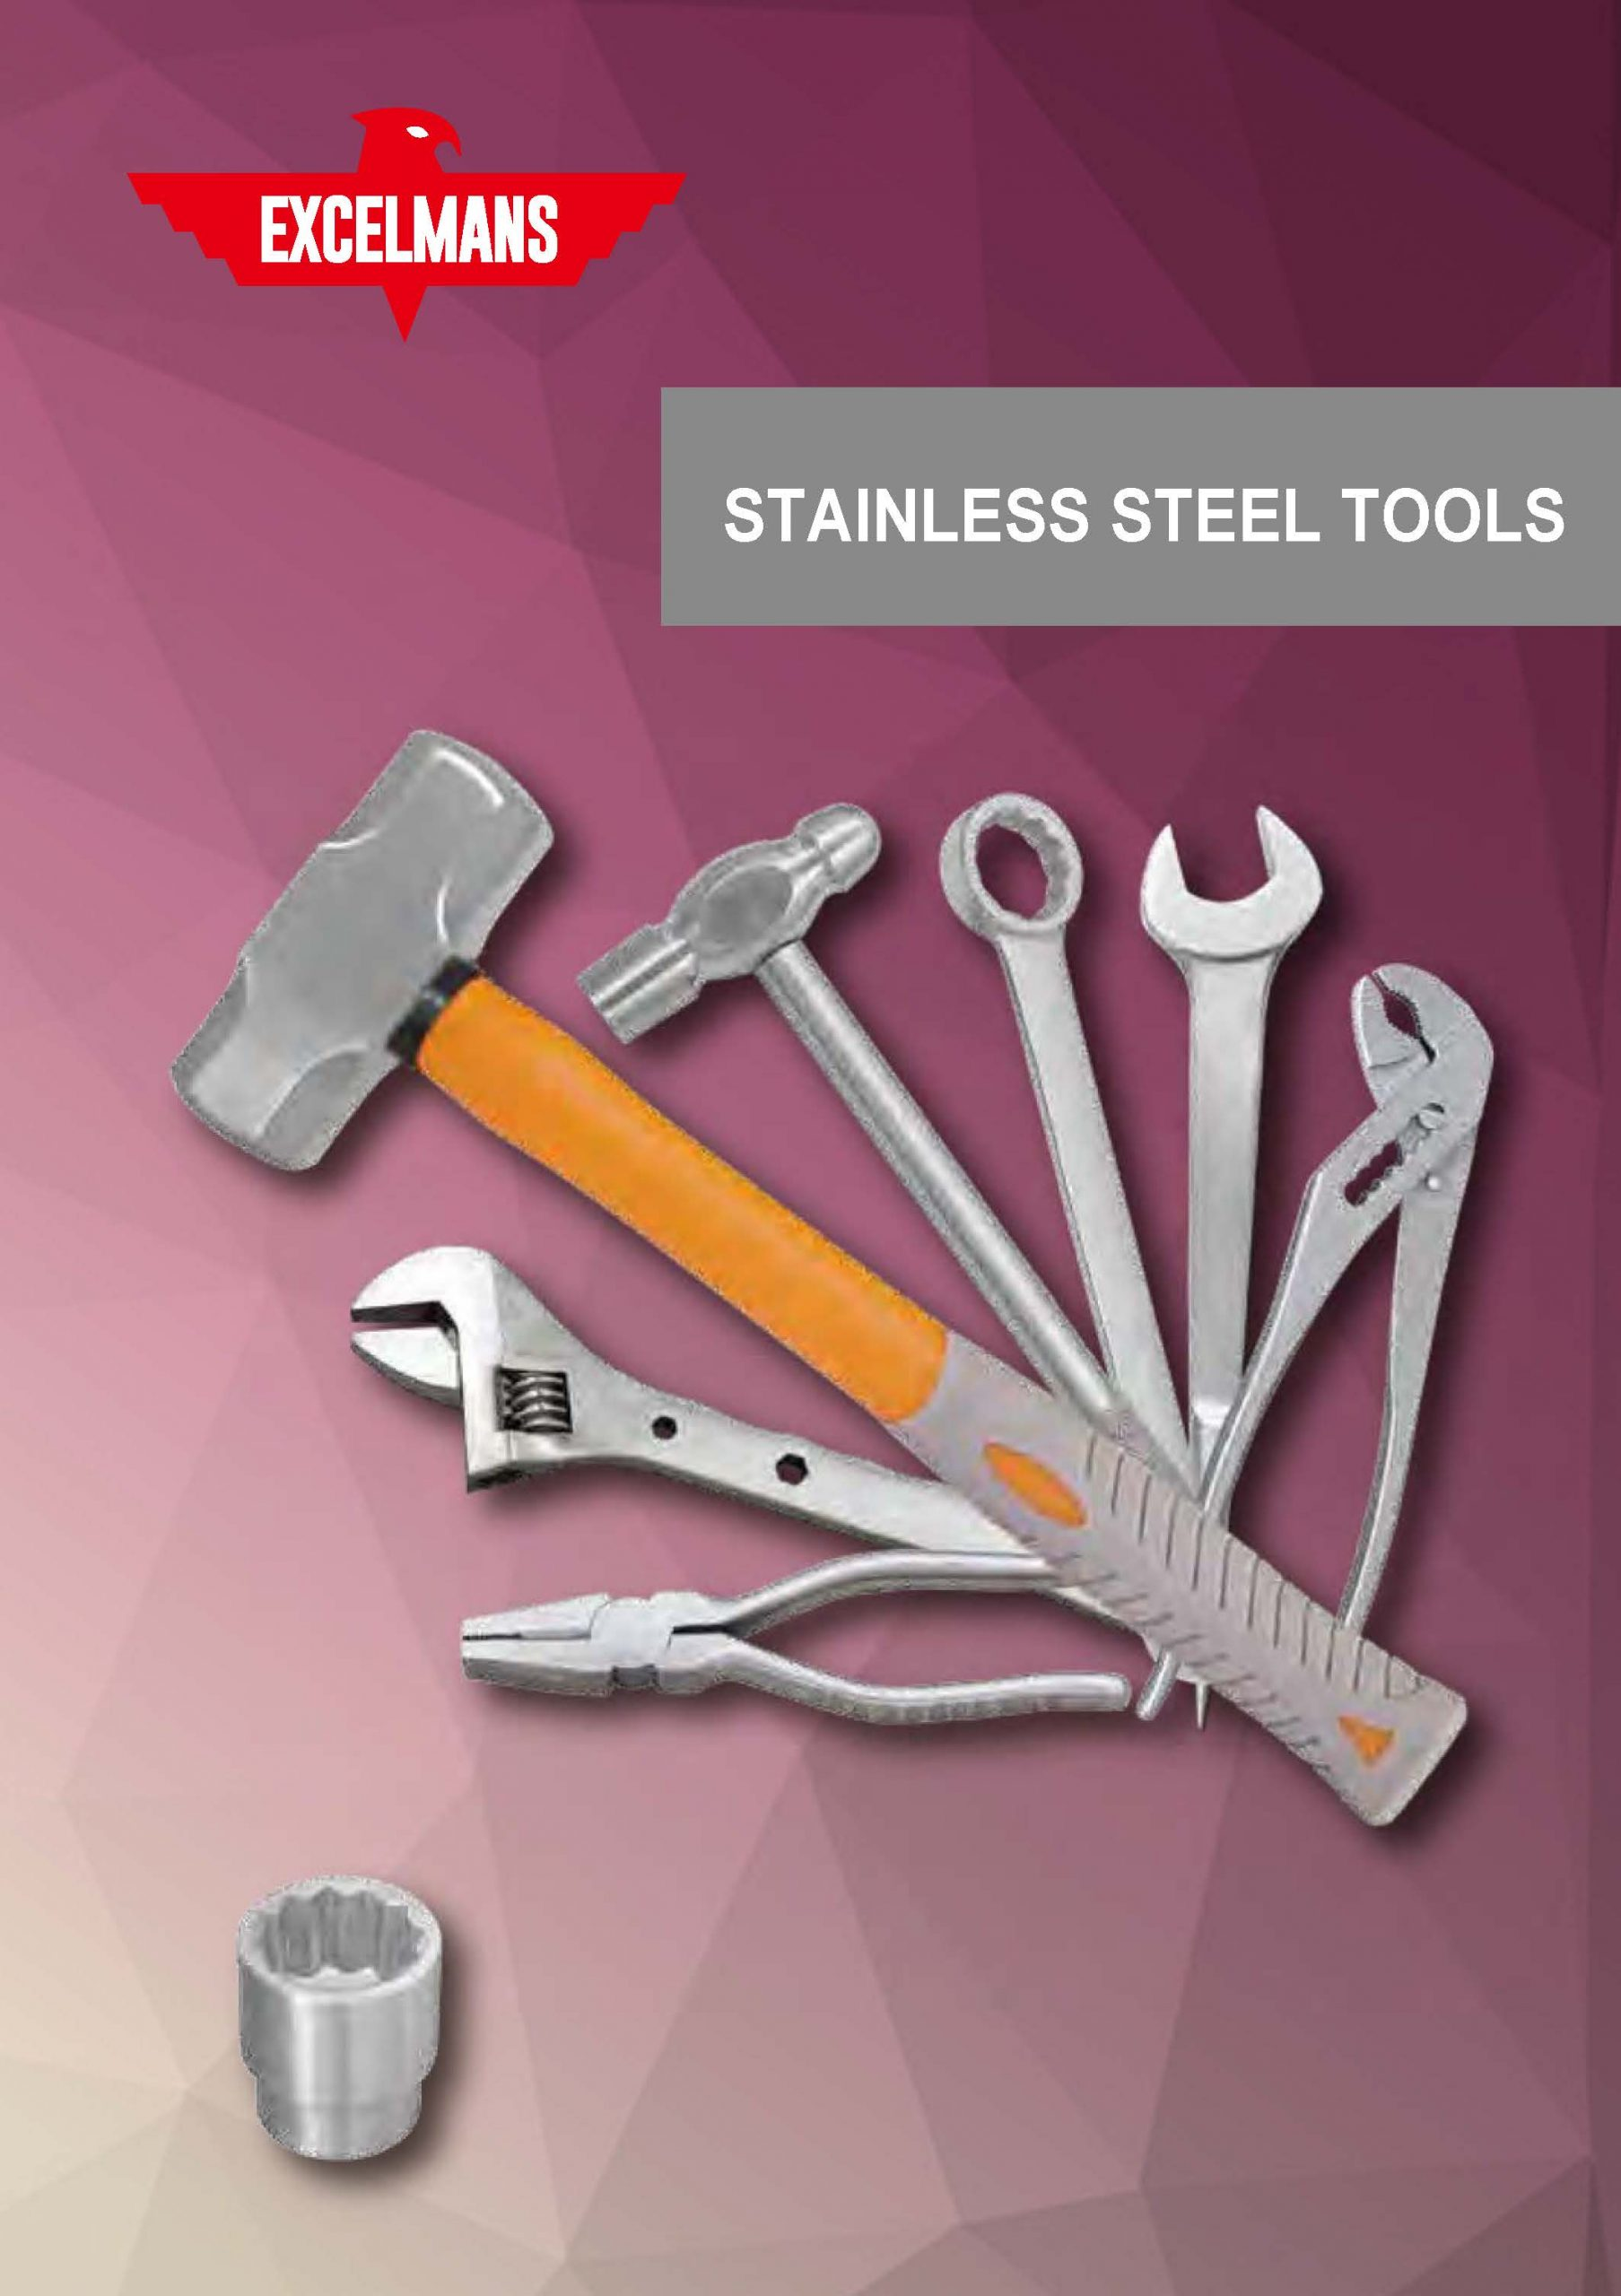 Excelmans stainless steel tools